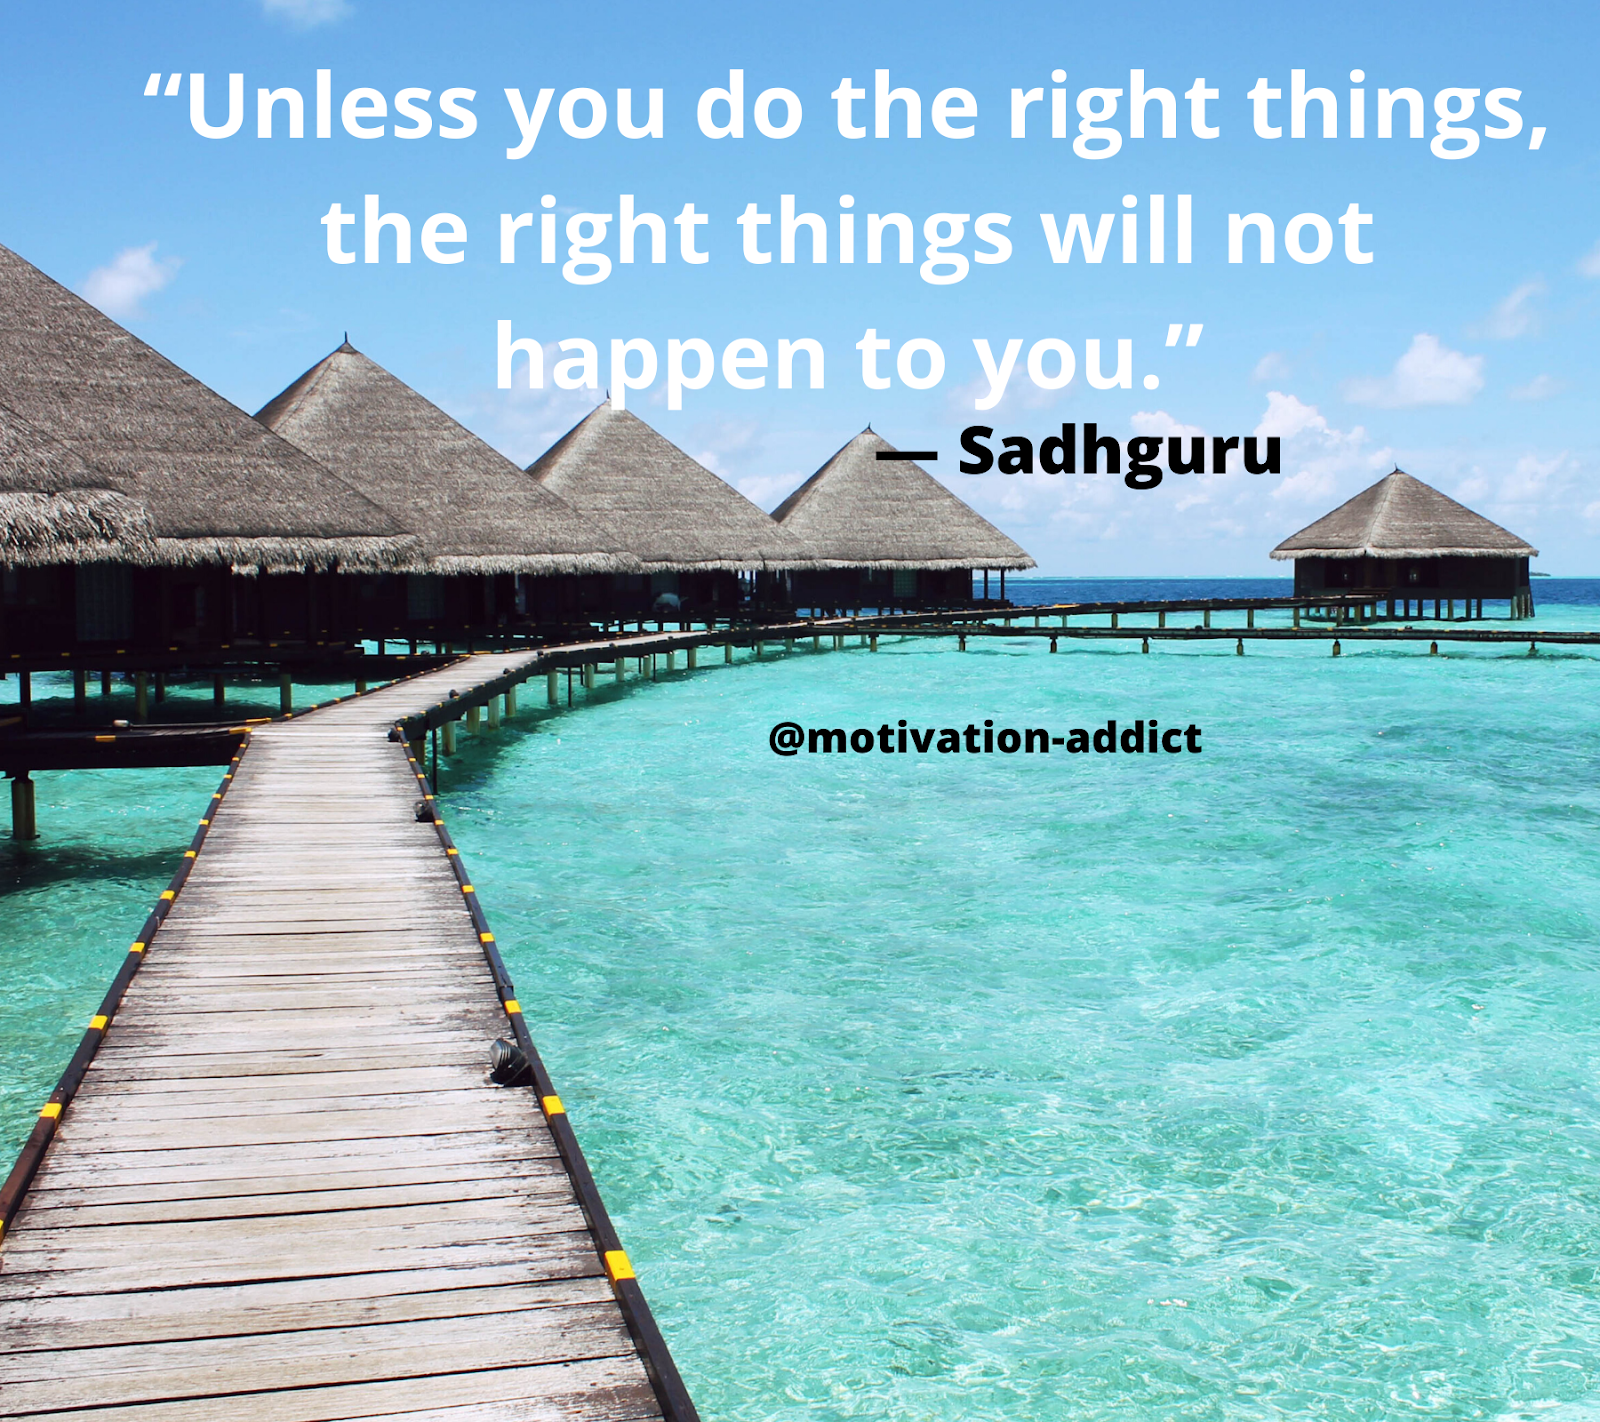 """UNLESS YOU DO THE RIGHT THING, THE RIGHT THINGS NEVER HAPPENS TO YOU."" -SADHGURU, JAGGI VASUDEV"